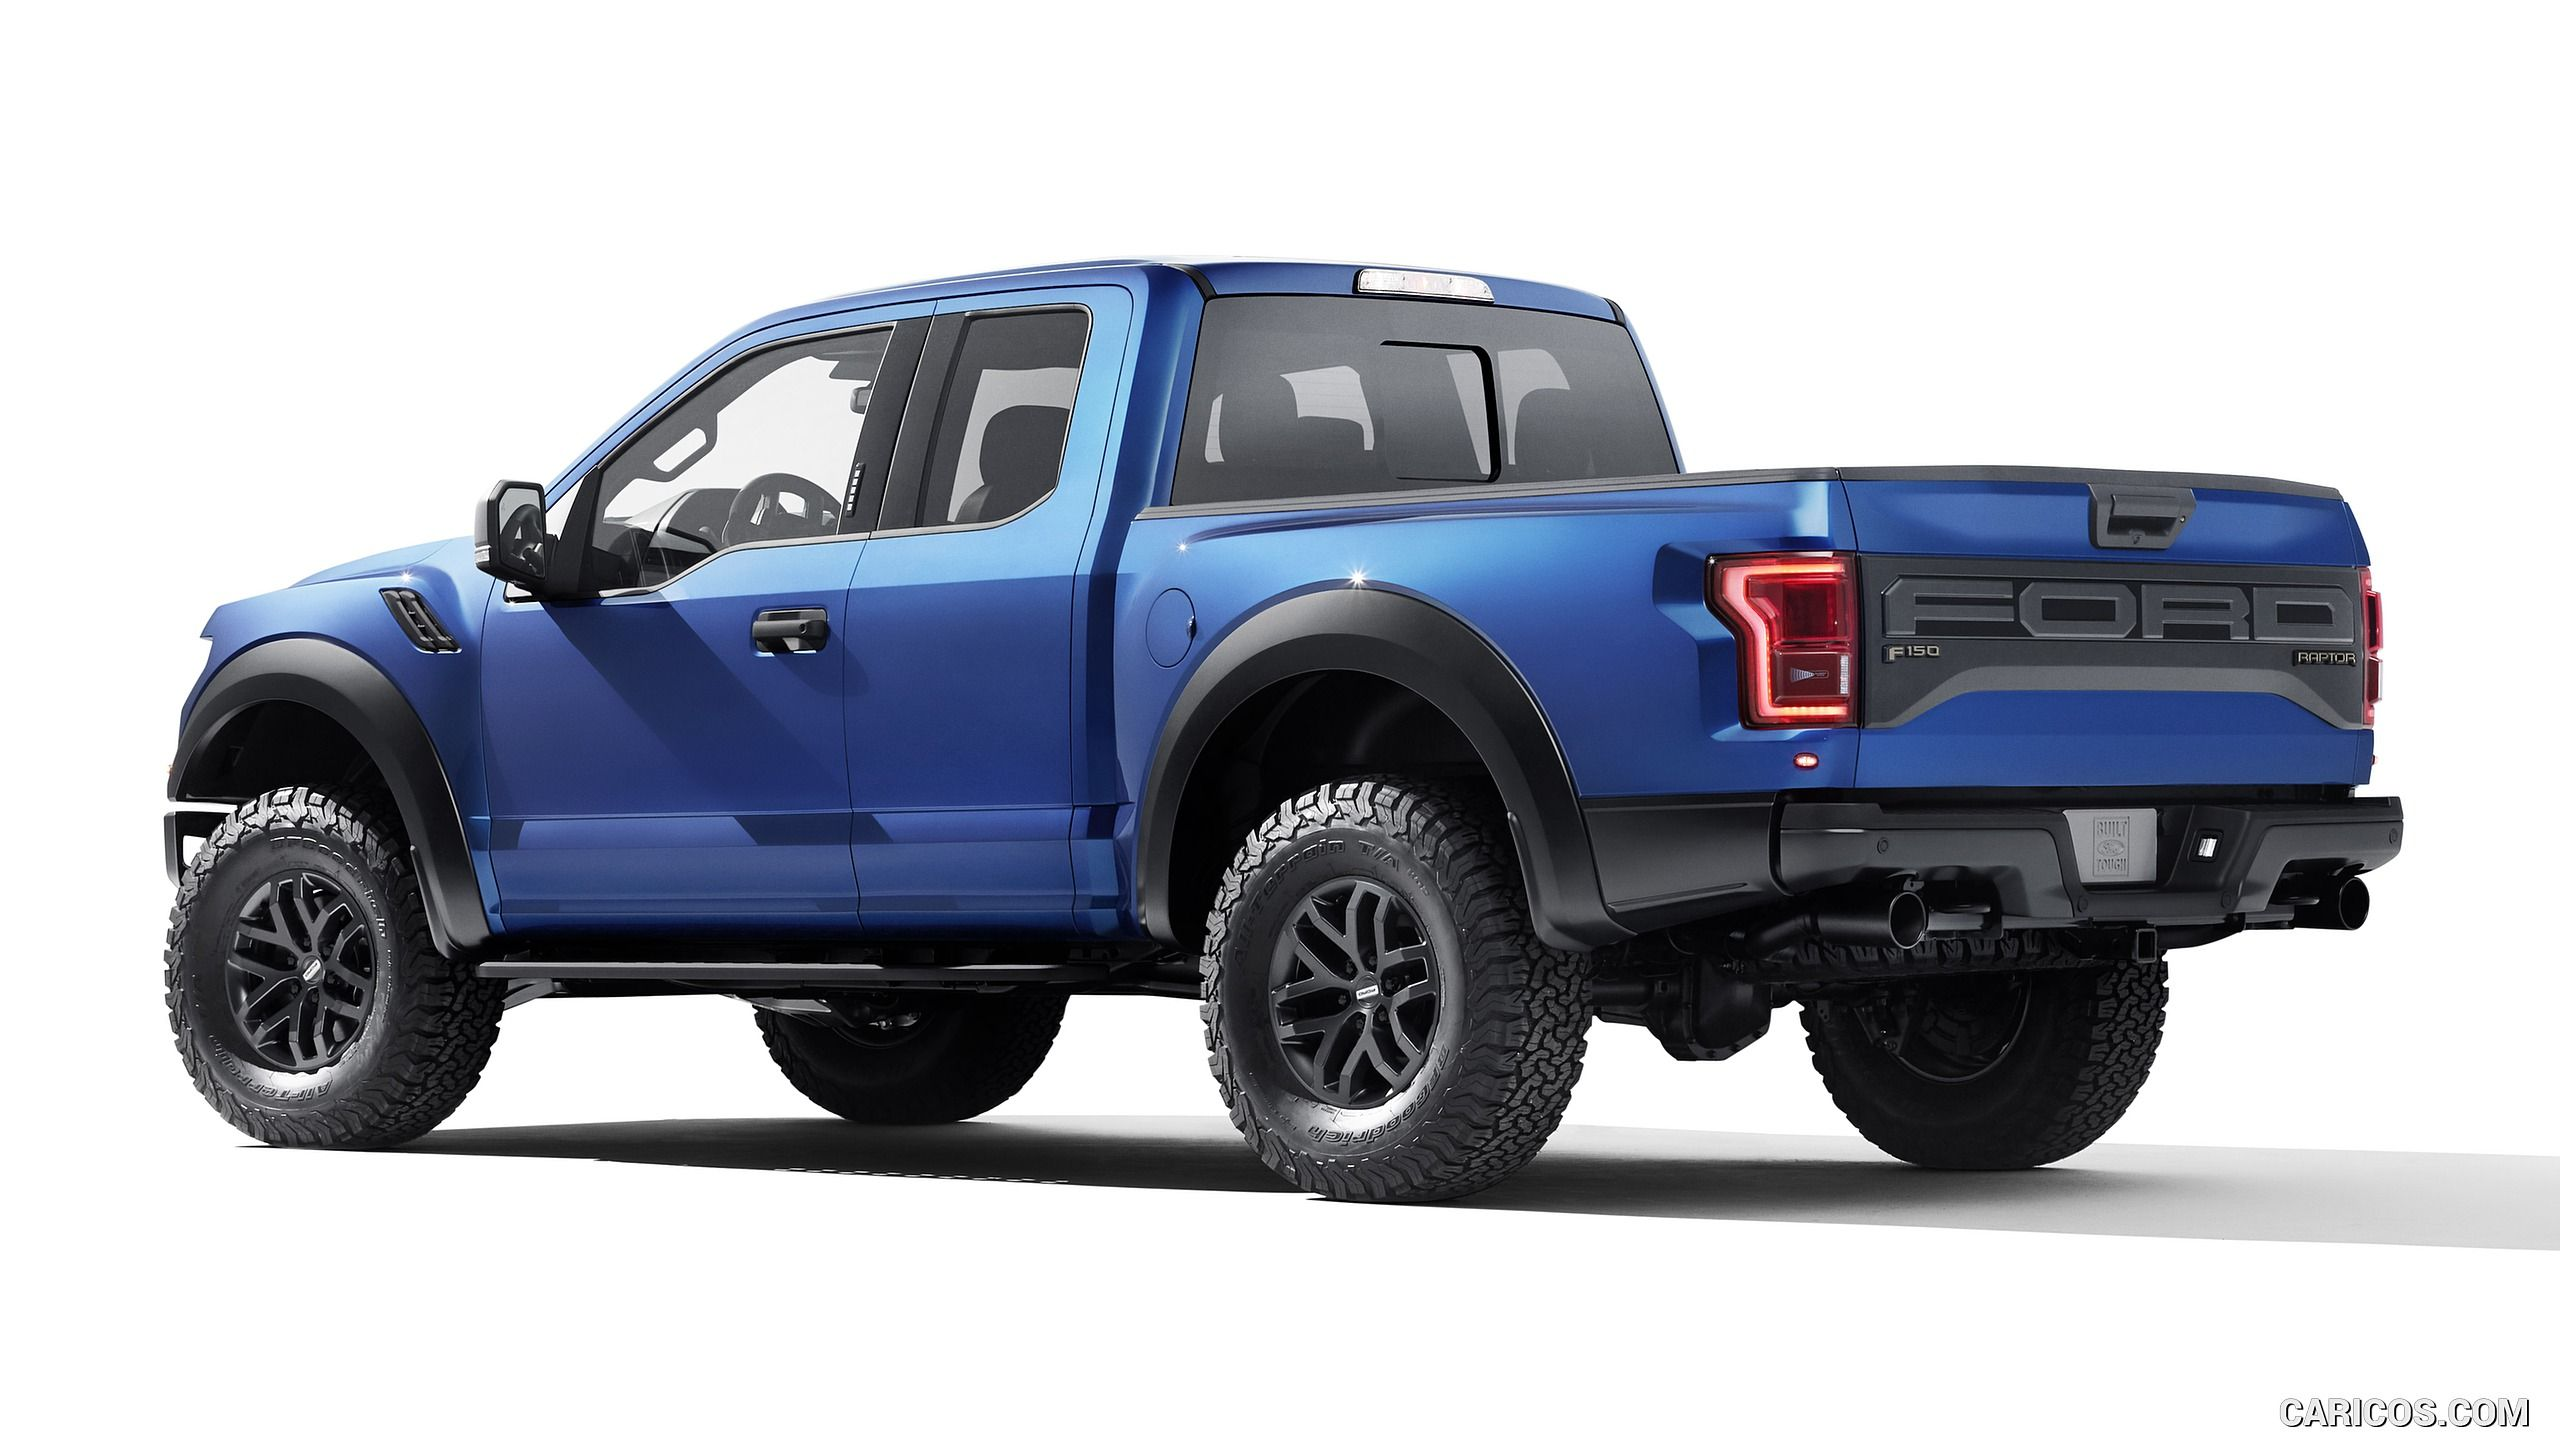 2018 ford raptor australia price and review 2018 ford raptor is another raptor as the spectacular outside predator made by ford engine organizati